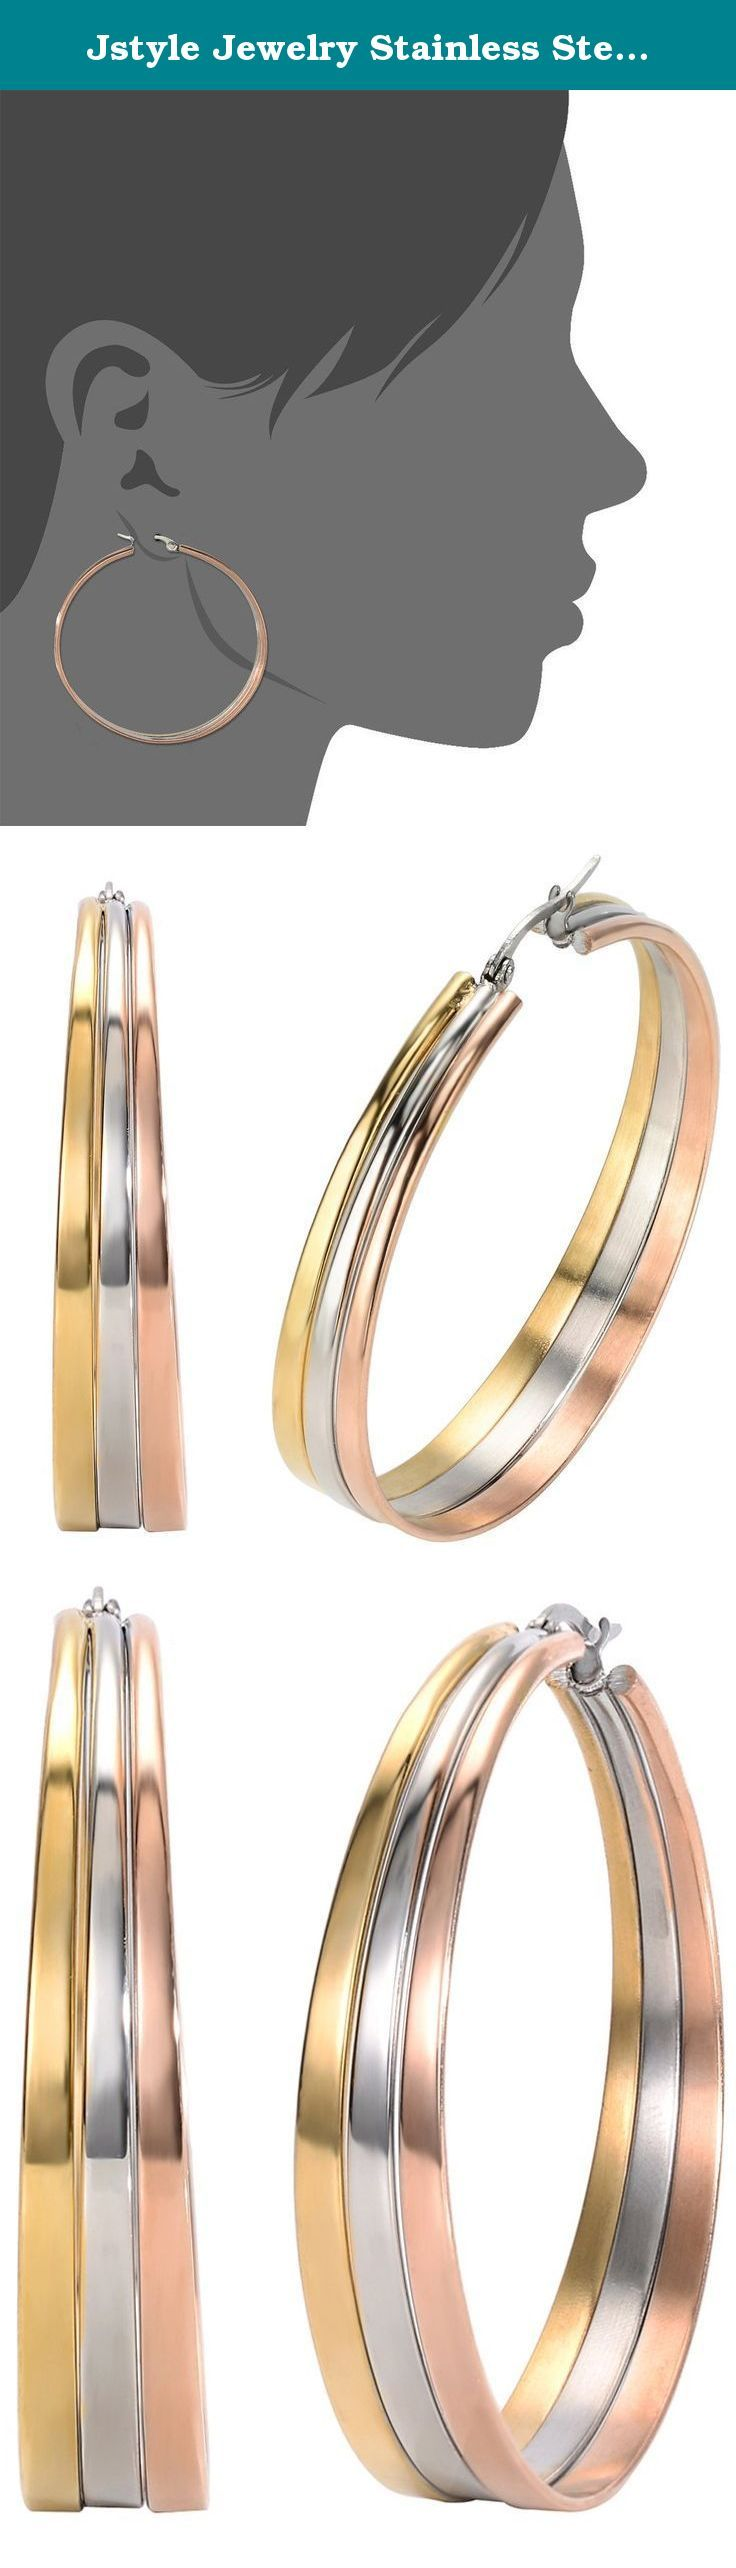 Jstyle Jewelry Stainless Steel Tri-color Big Hoop Earrings for Women. Jstyle Jewelry Stainless Steel Tri-color Big Hoop Earrings for Women (51 37mm Diameter) High quality stainless steel has high resistance to rust, corrosion and tarnishing, which requires minimal maintenance. Stainless steel is one of the most bio-compatible metals, so stainless steel jewelry is amazingly hypoallergenic because of its anti-allergic properties. As one of the strongest of all jewelry metals, it does not...